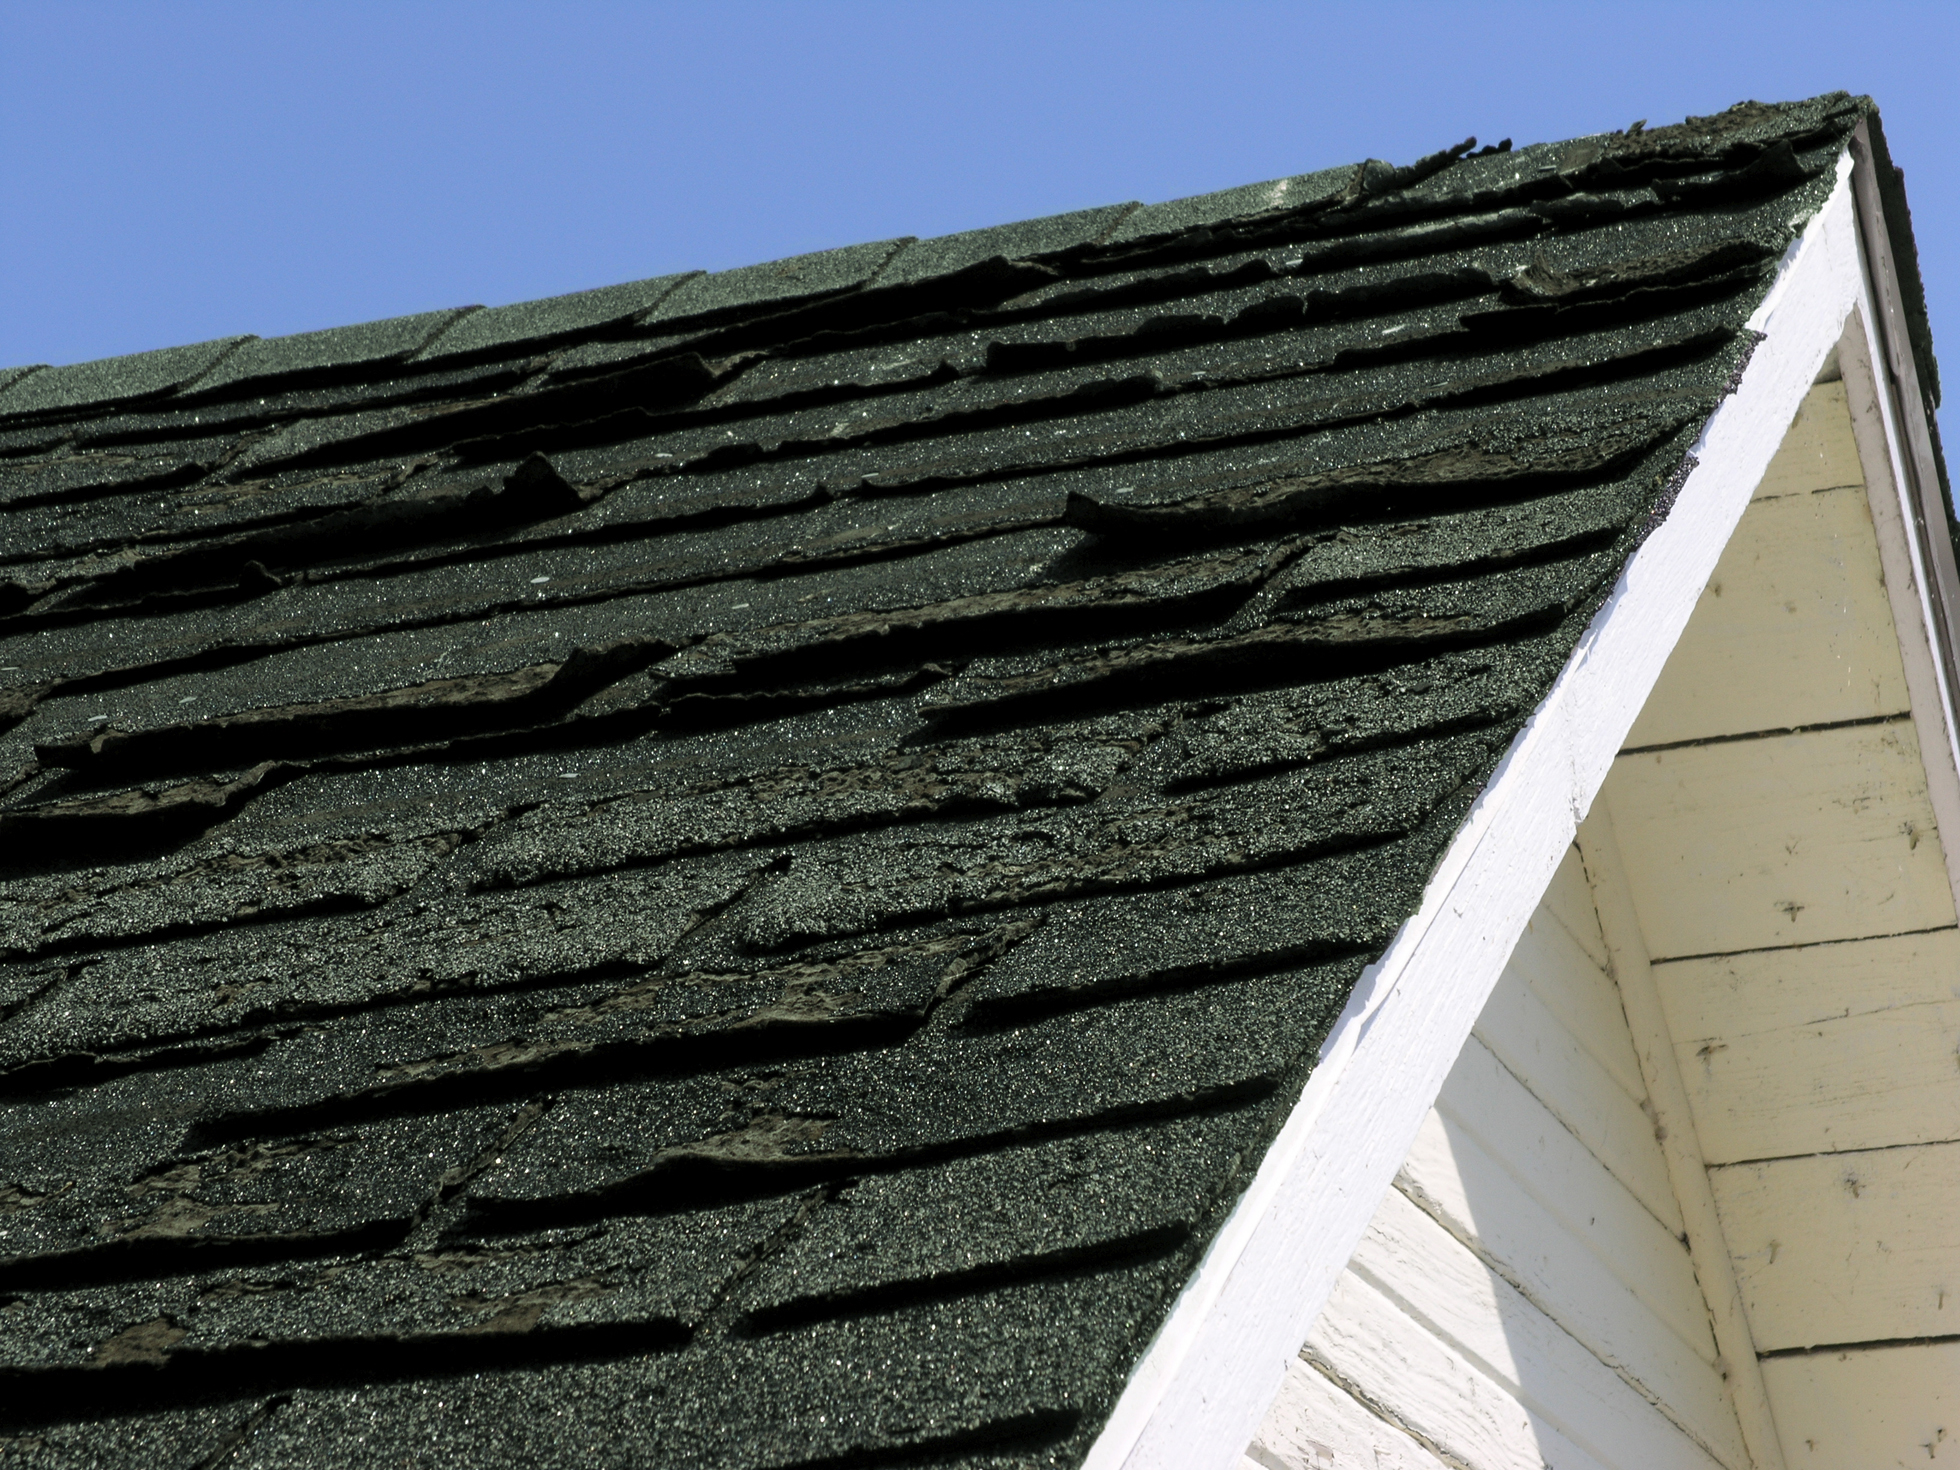 Roof with older shingles